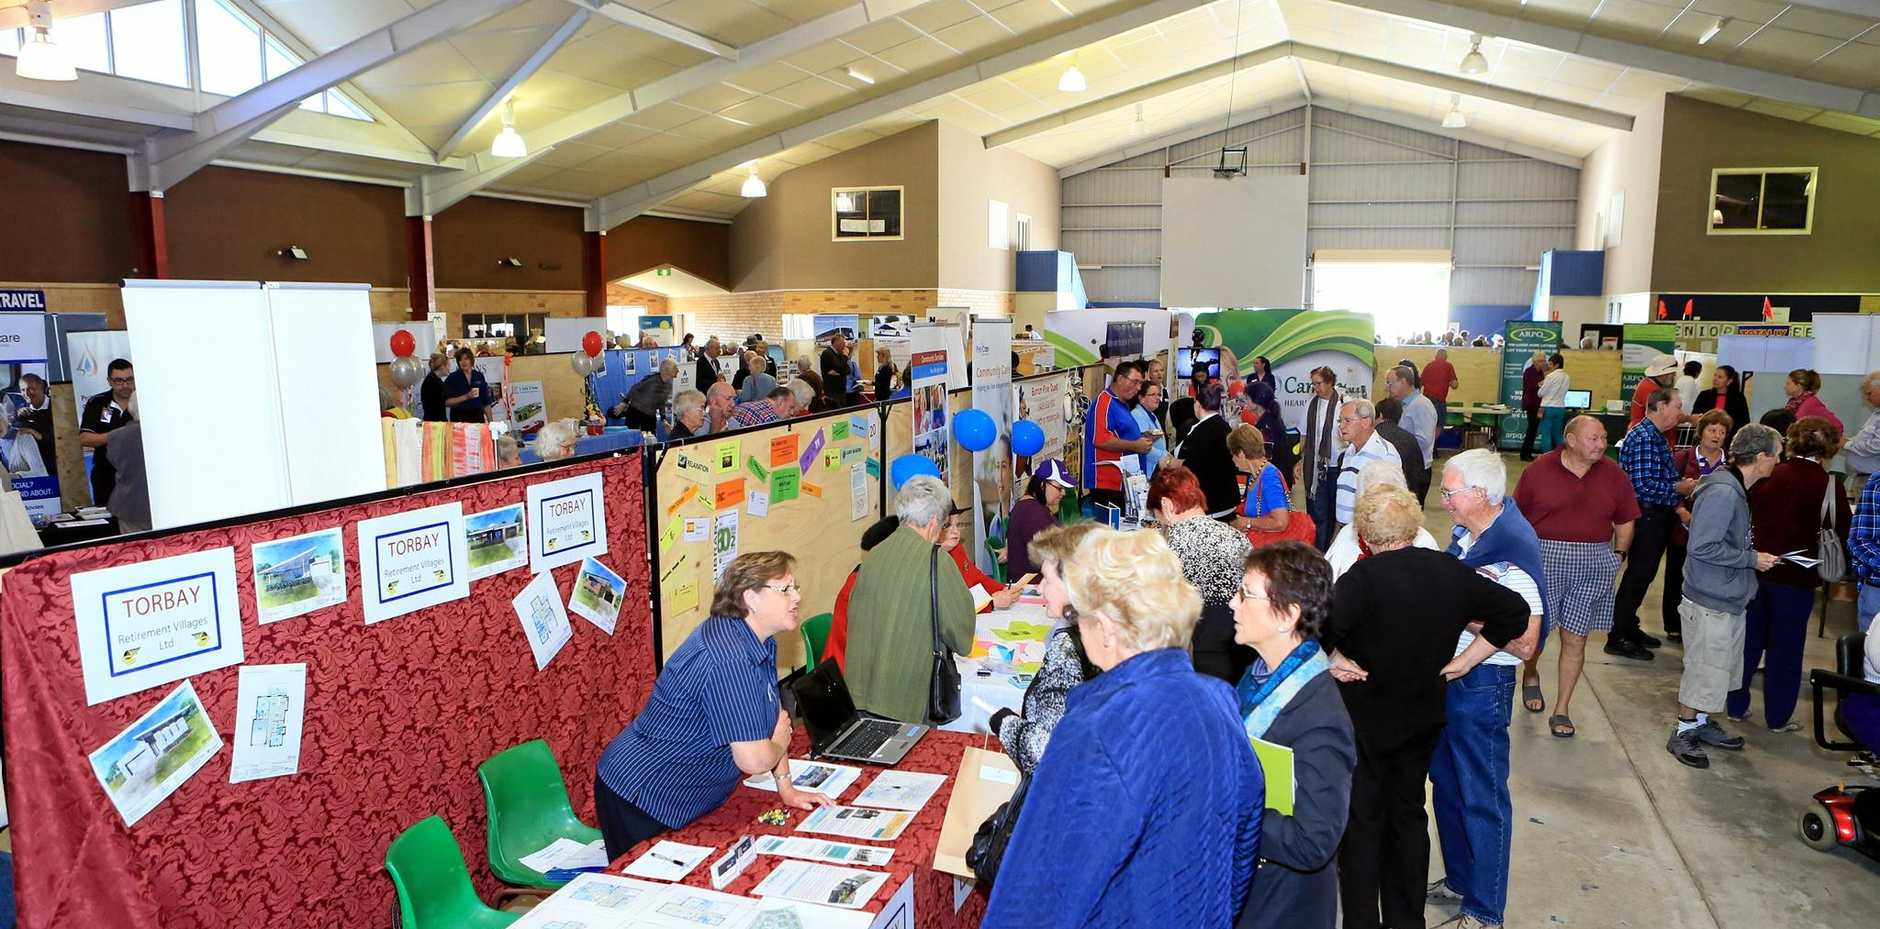 LOTS TO SEE: The 12th annual Seniors expo attracted more than 90 exhibitors.